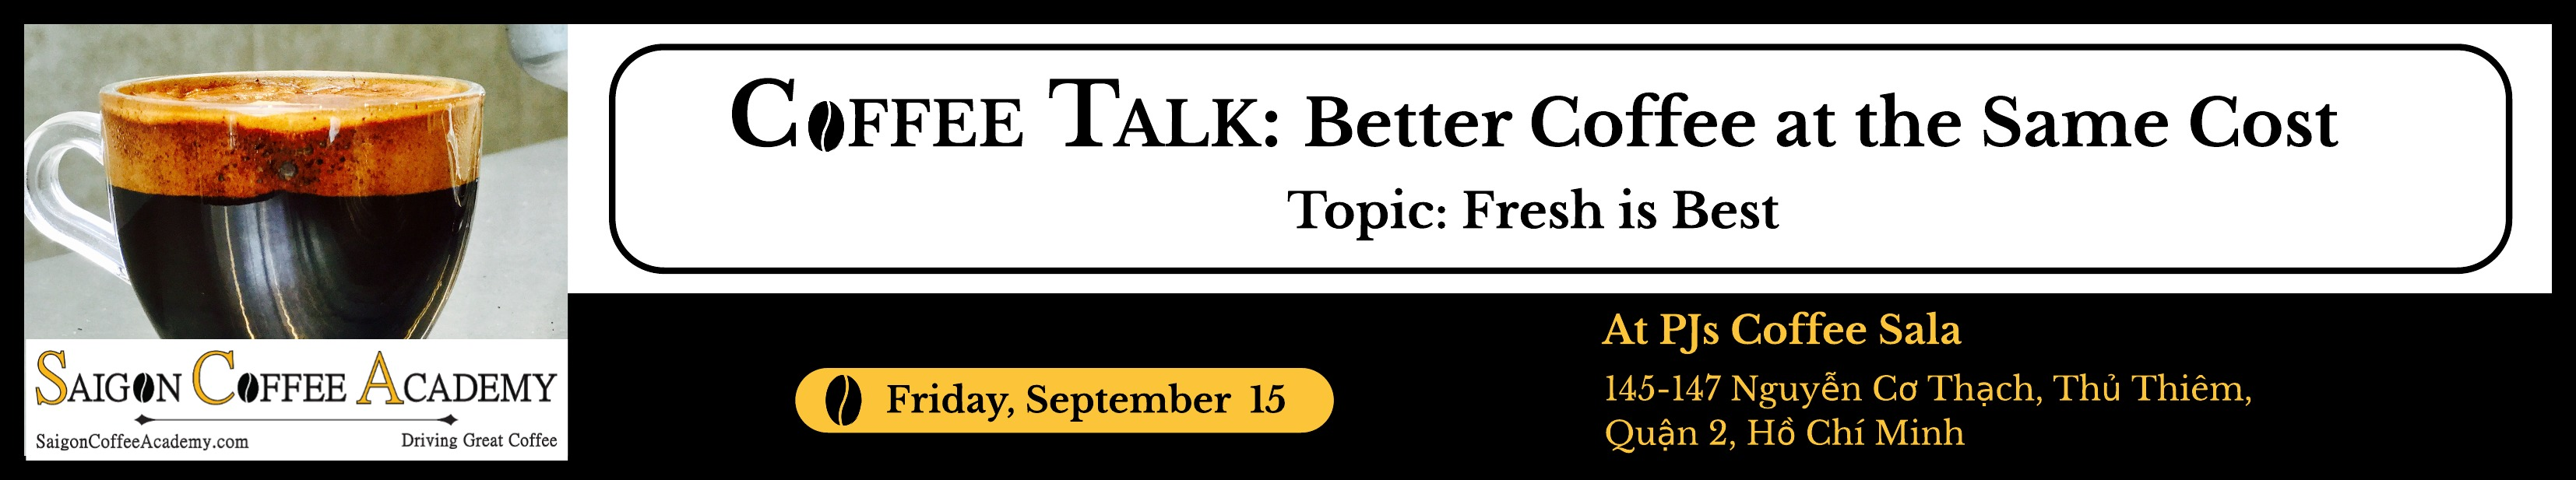 coffee-talk-15-sept.jpg